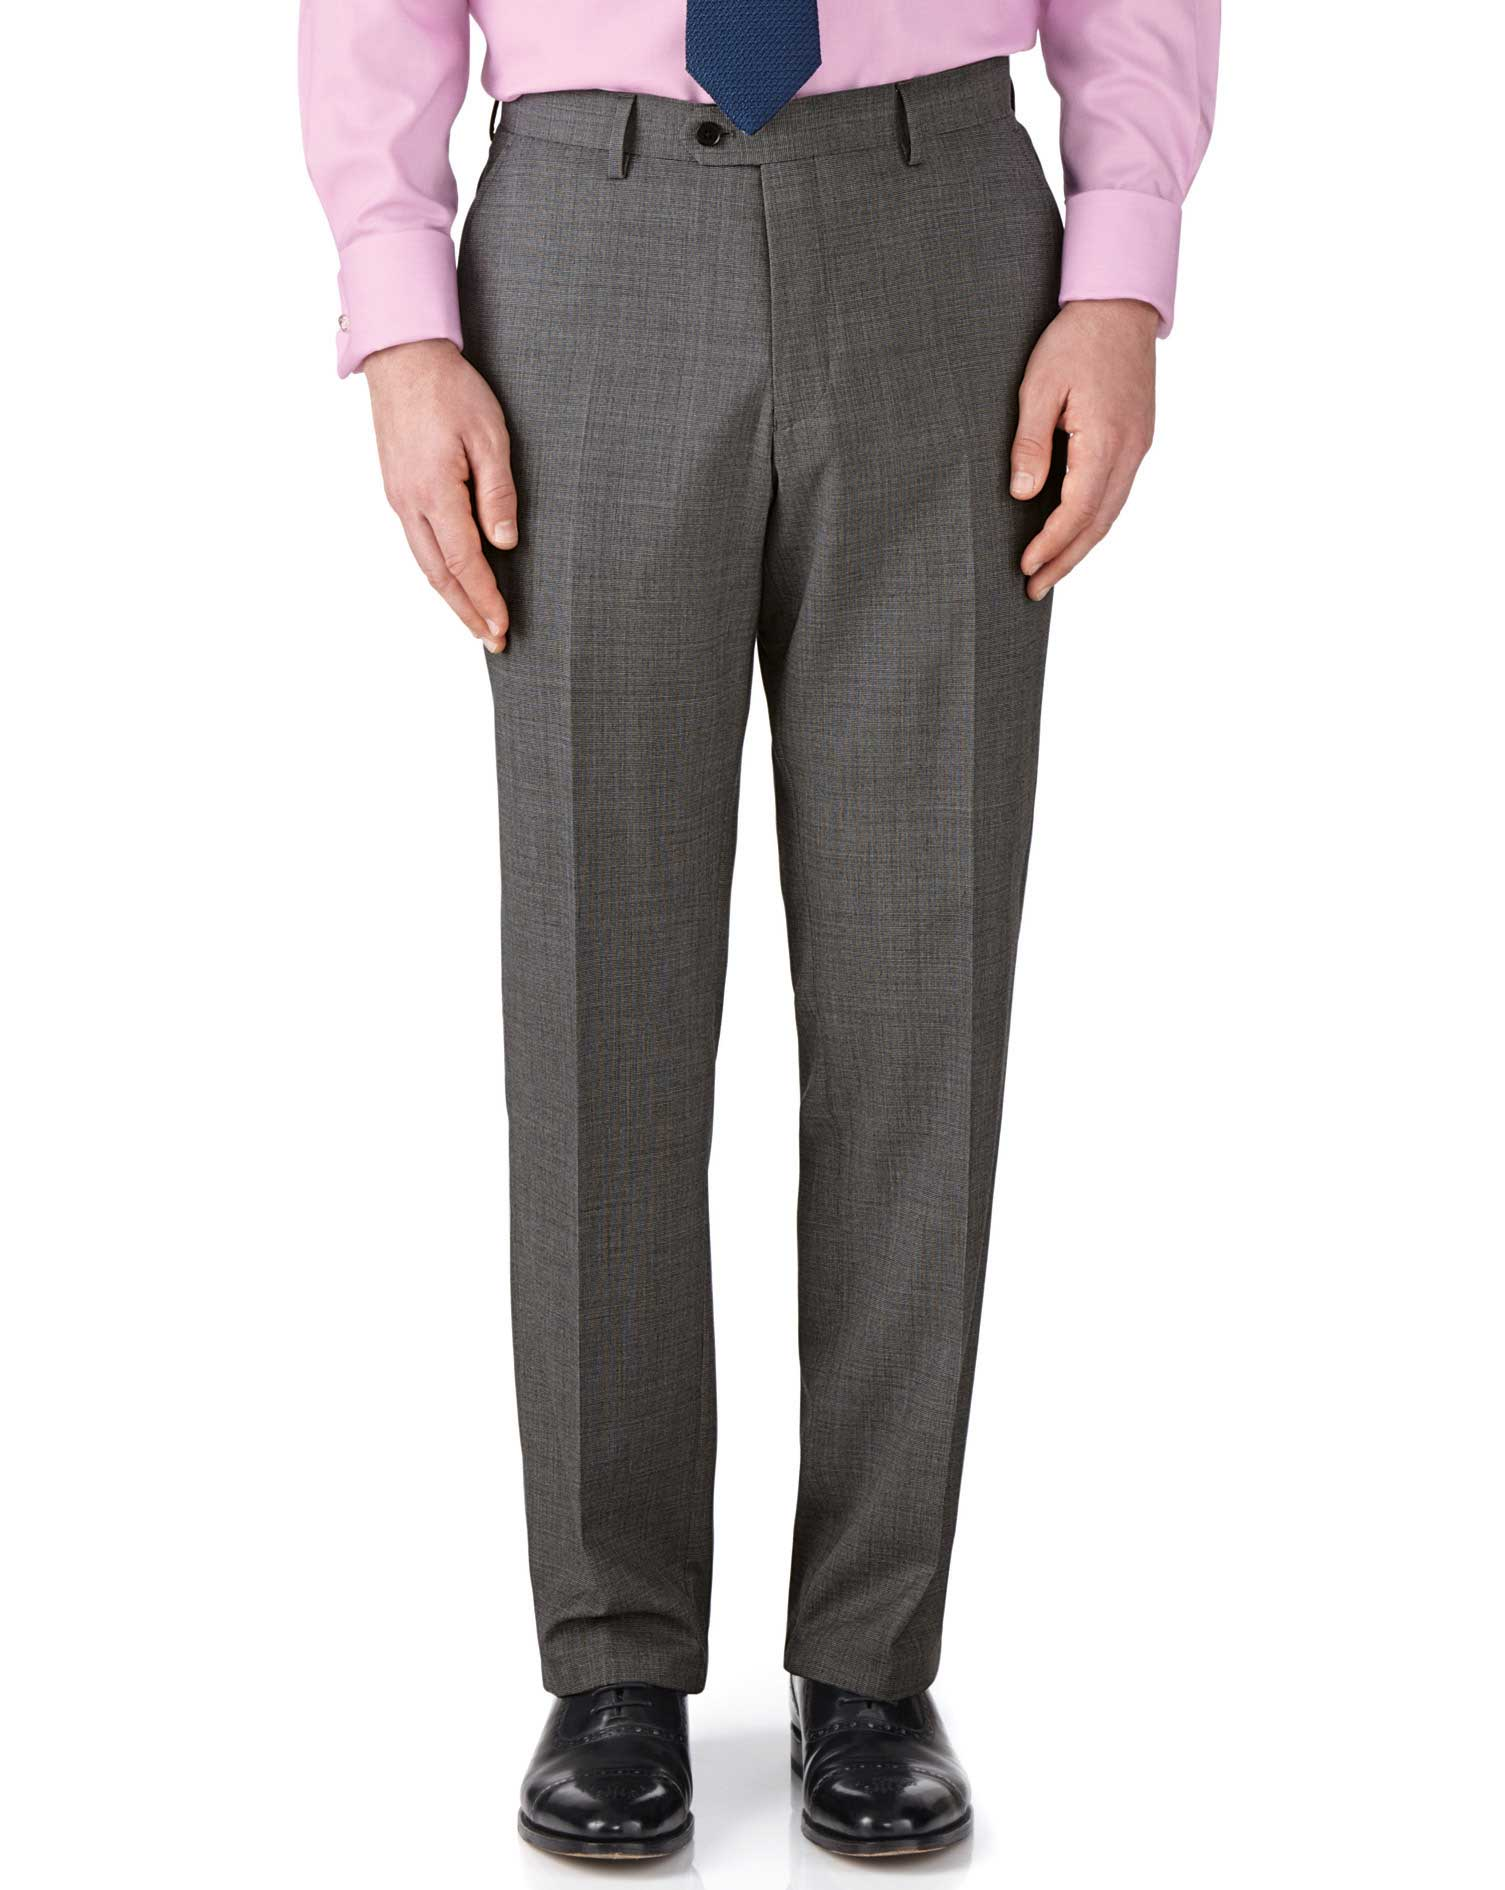 Grey Classic Fit End-On-End Business Suit Trousers Size W30 L38 by Charles Tyrwhitt